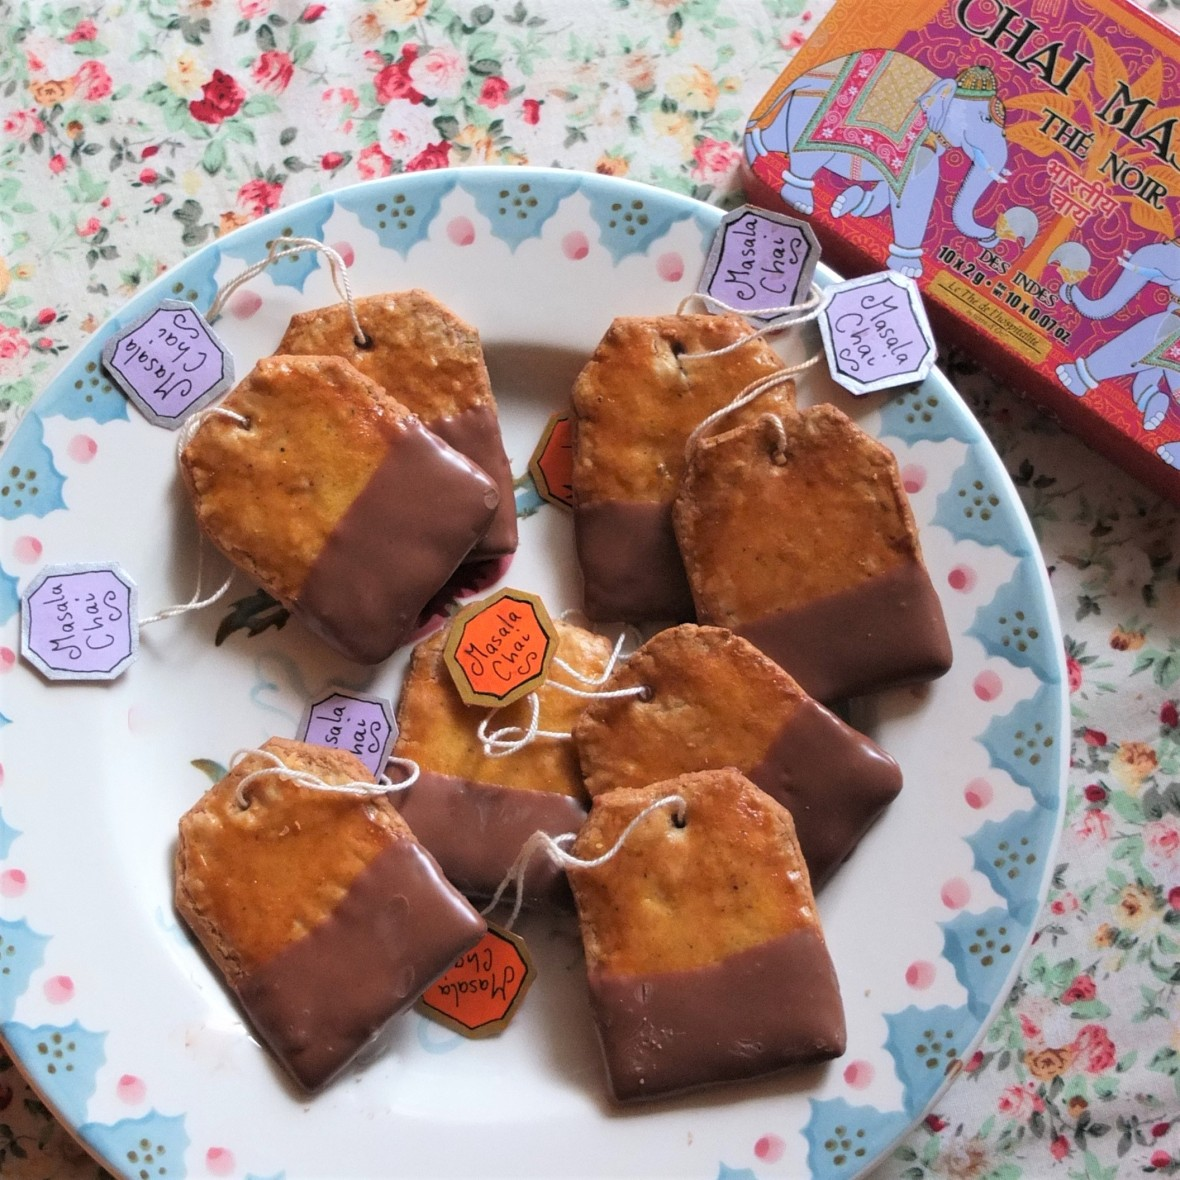 Masala Chai tea bag biscuits or cookies dipped in chocolate